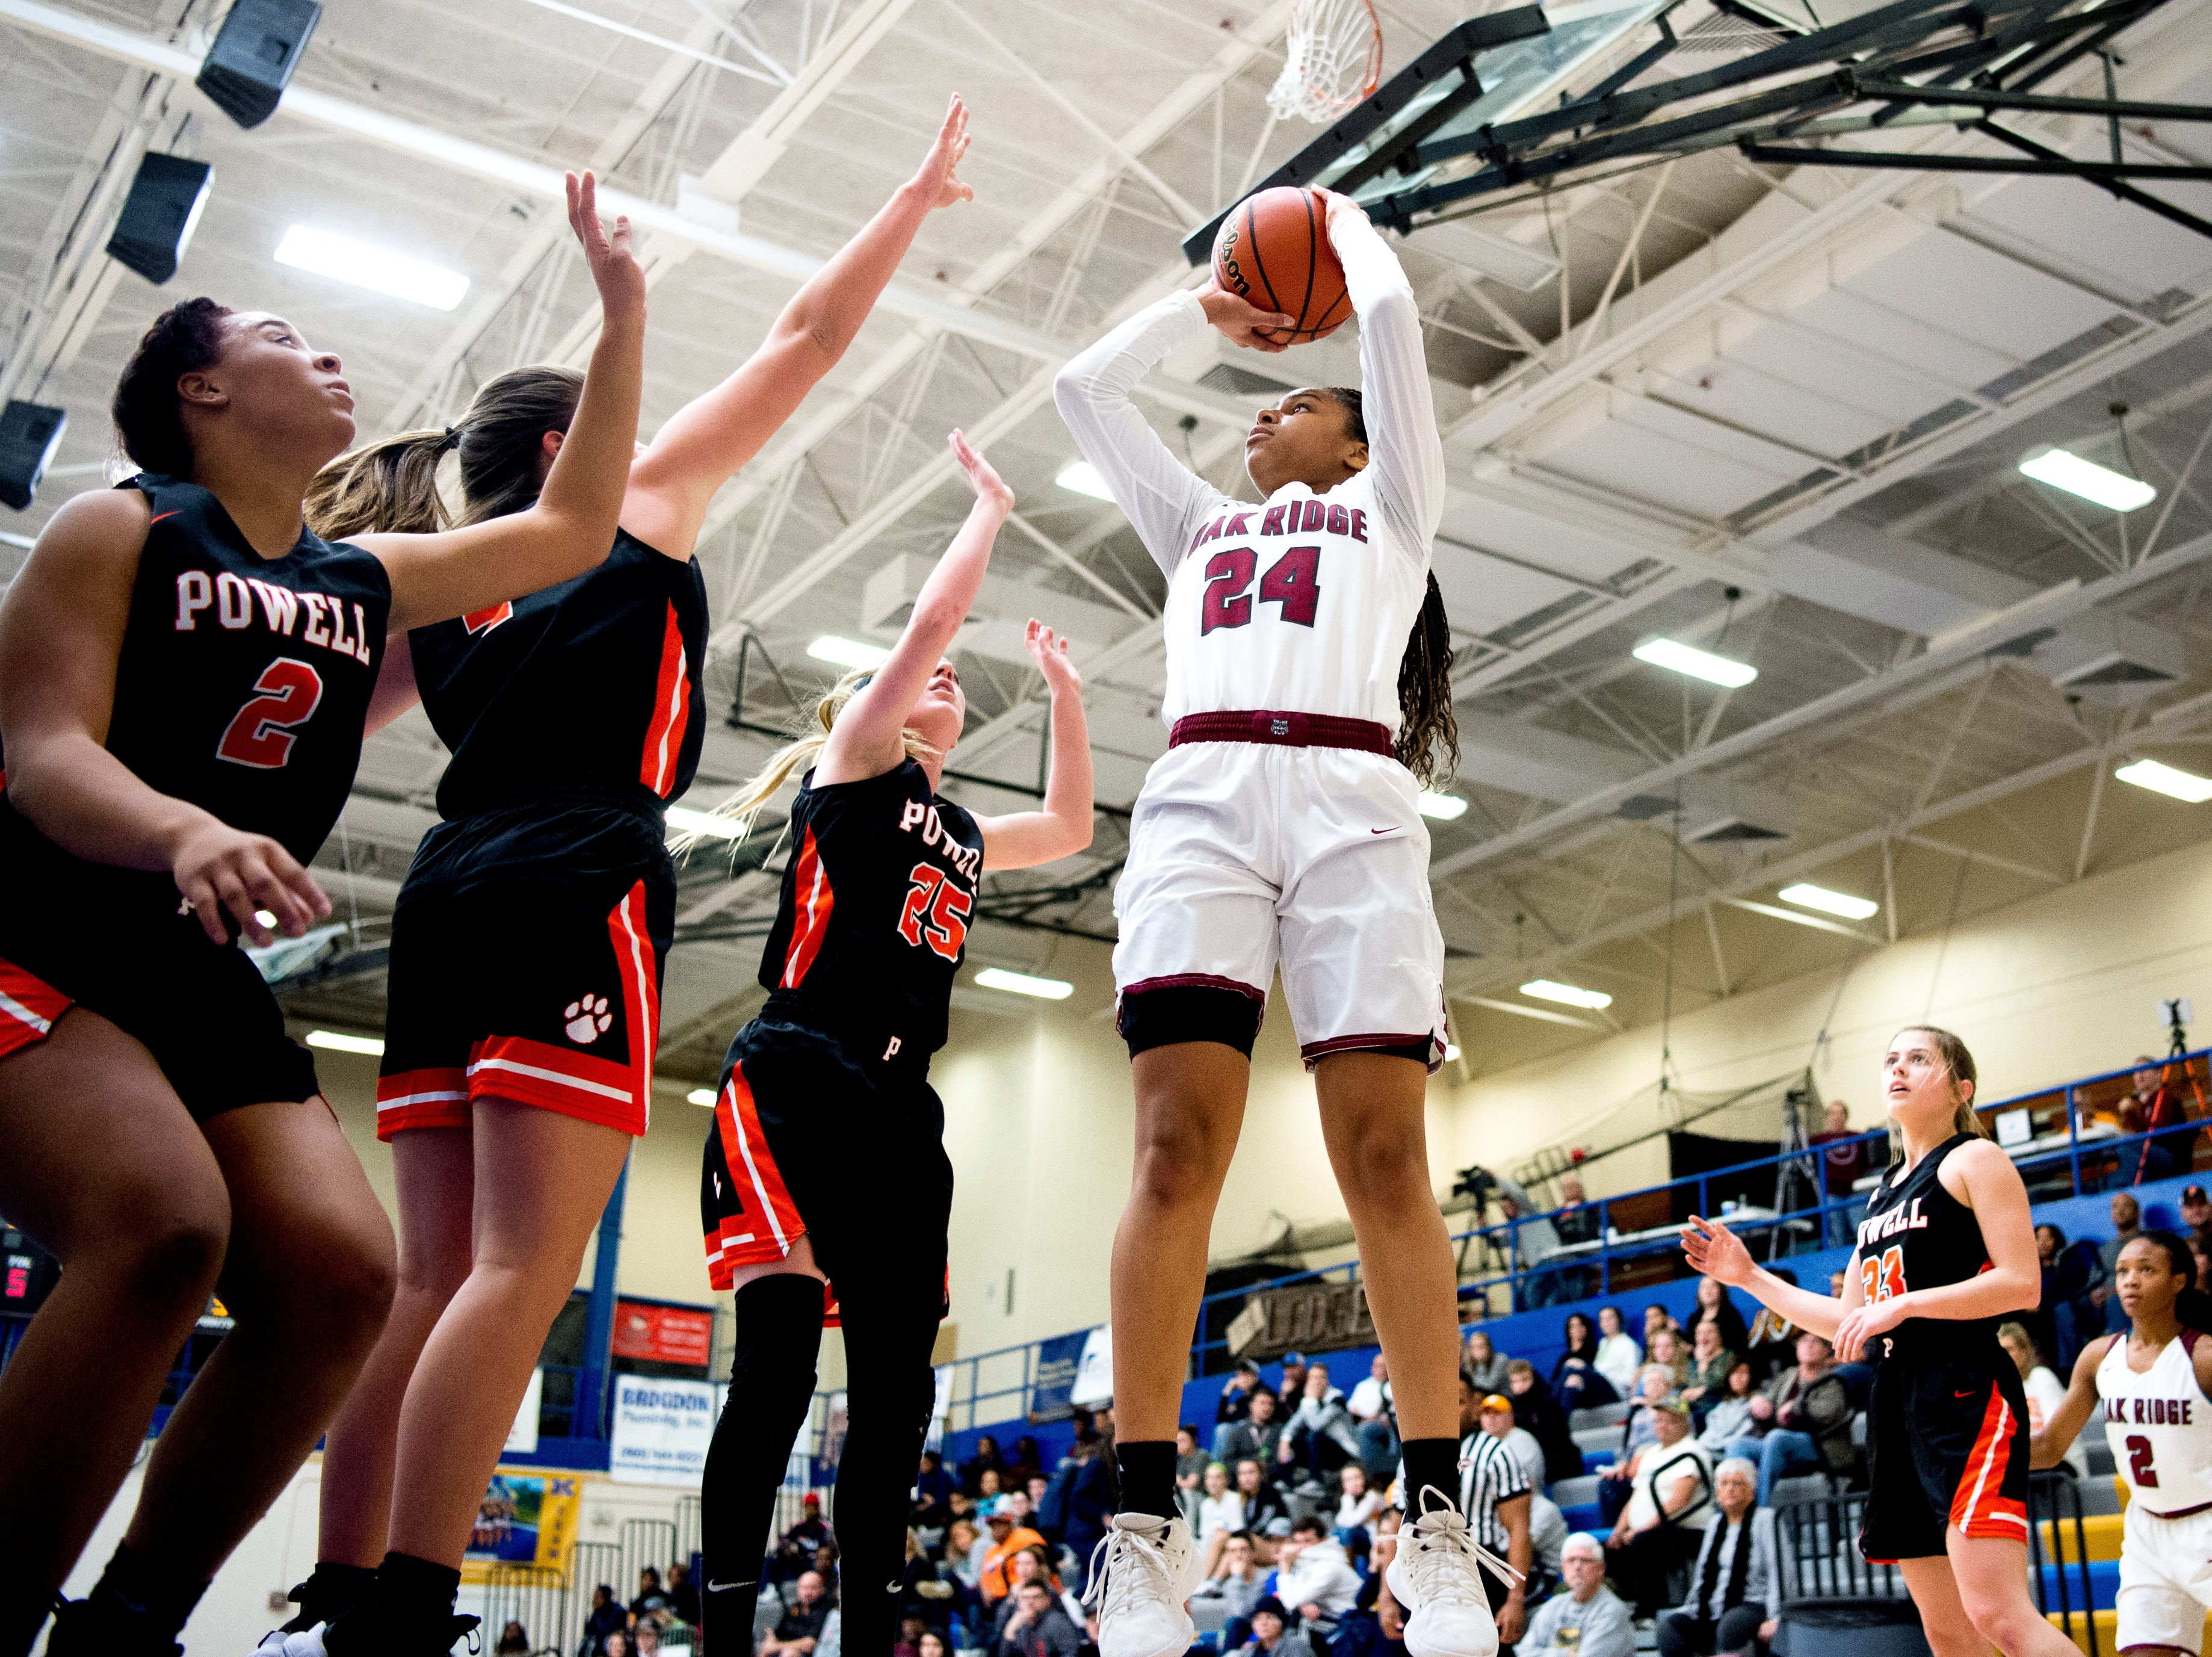 Oak Ridge's Jada Guinn (24) shoots the ball as Powell defends during a game between semifinal game between Oak Ridge and Powell at Karns High School in Knoxville, Tennessee on Saturday, February 16, 2019.